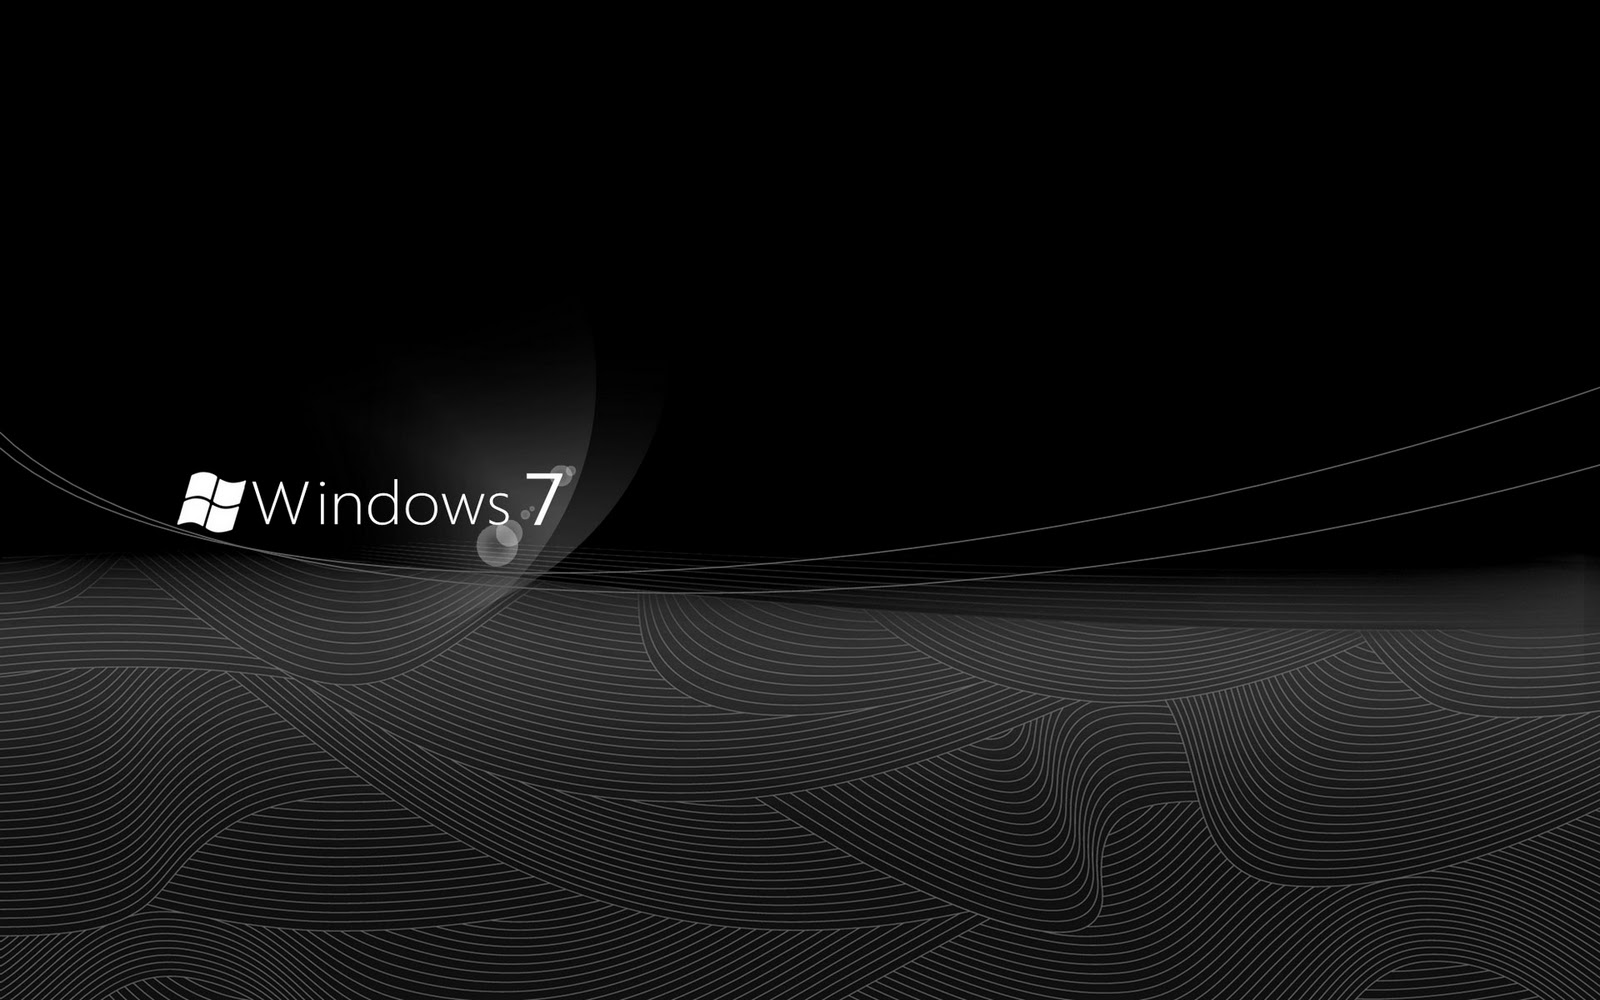 Windows 7 Theme Wallpapers Black 2012 235342634